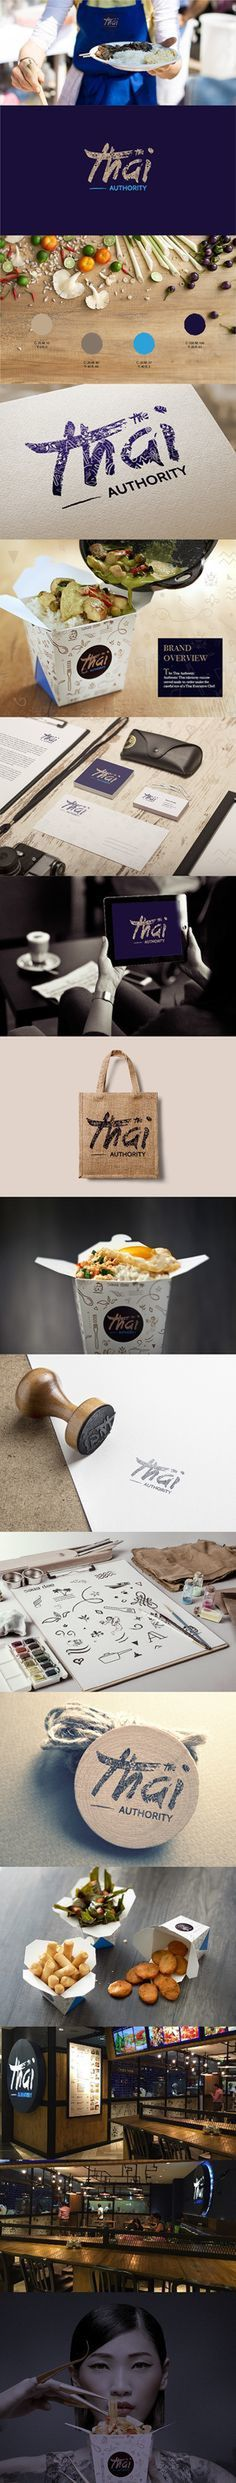 Client: The Thai AuthorityMedium: Art Direction, Logo & Corporate IdentityAbout: The Thai Authority is an authentic Thai takeaway cuisine se